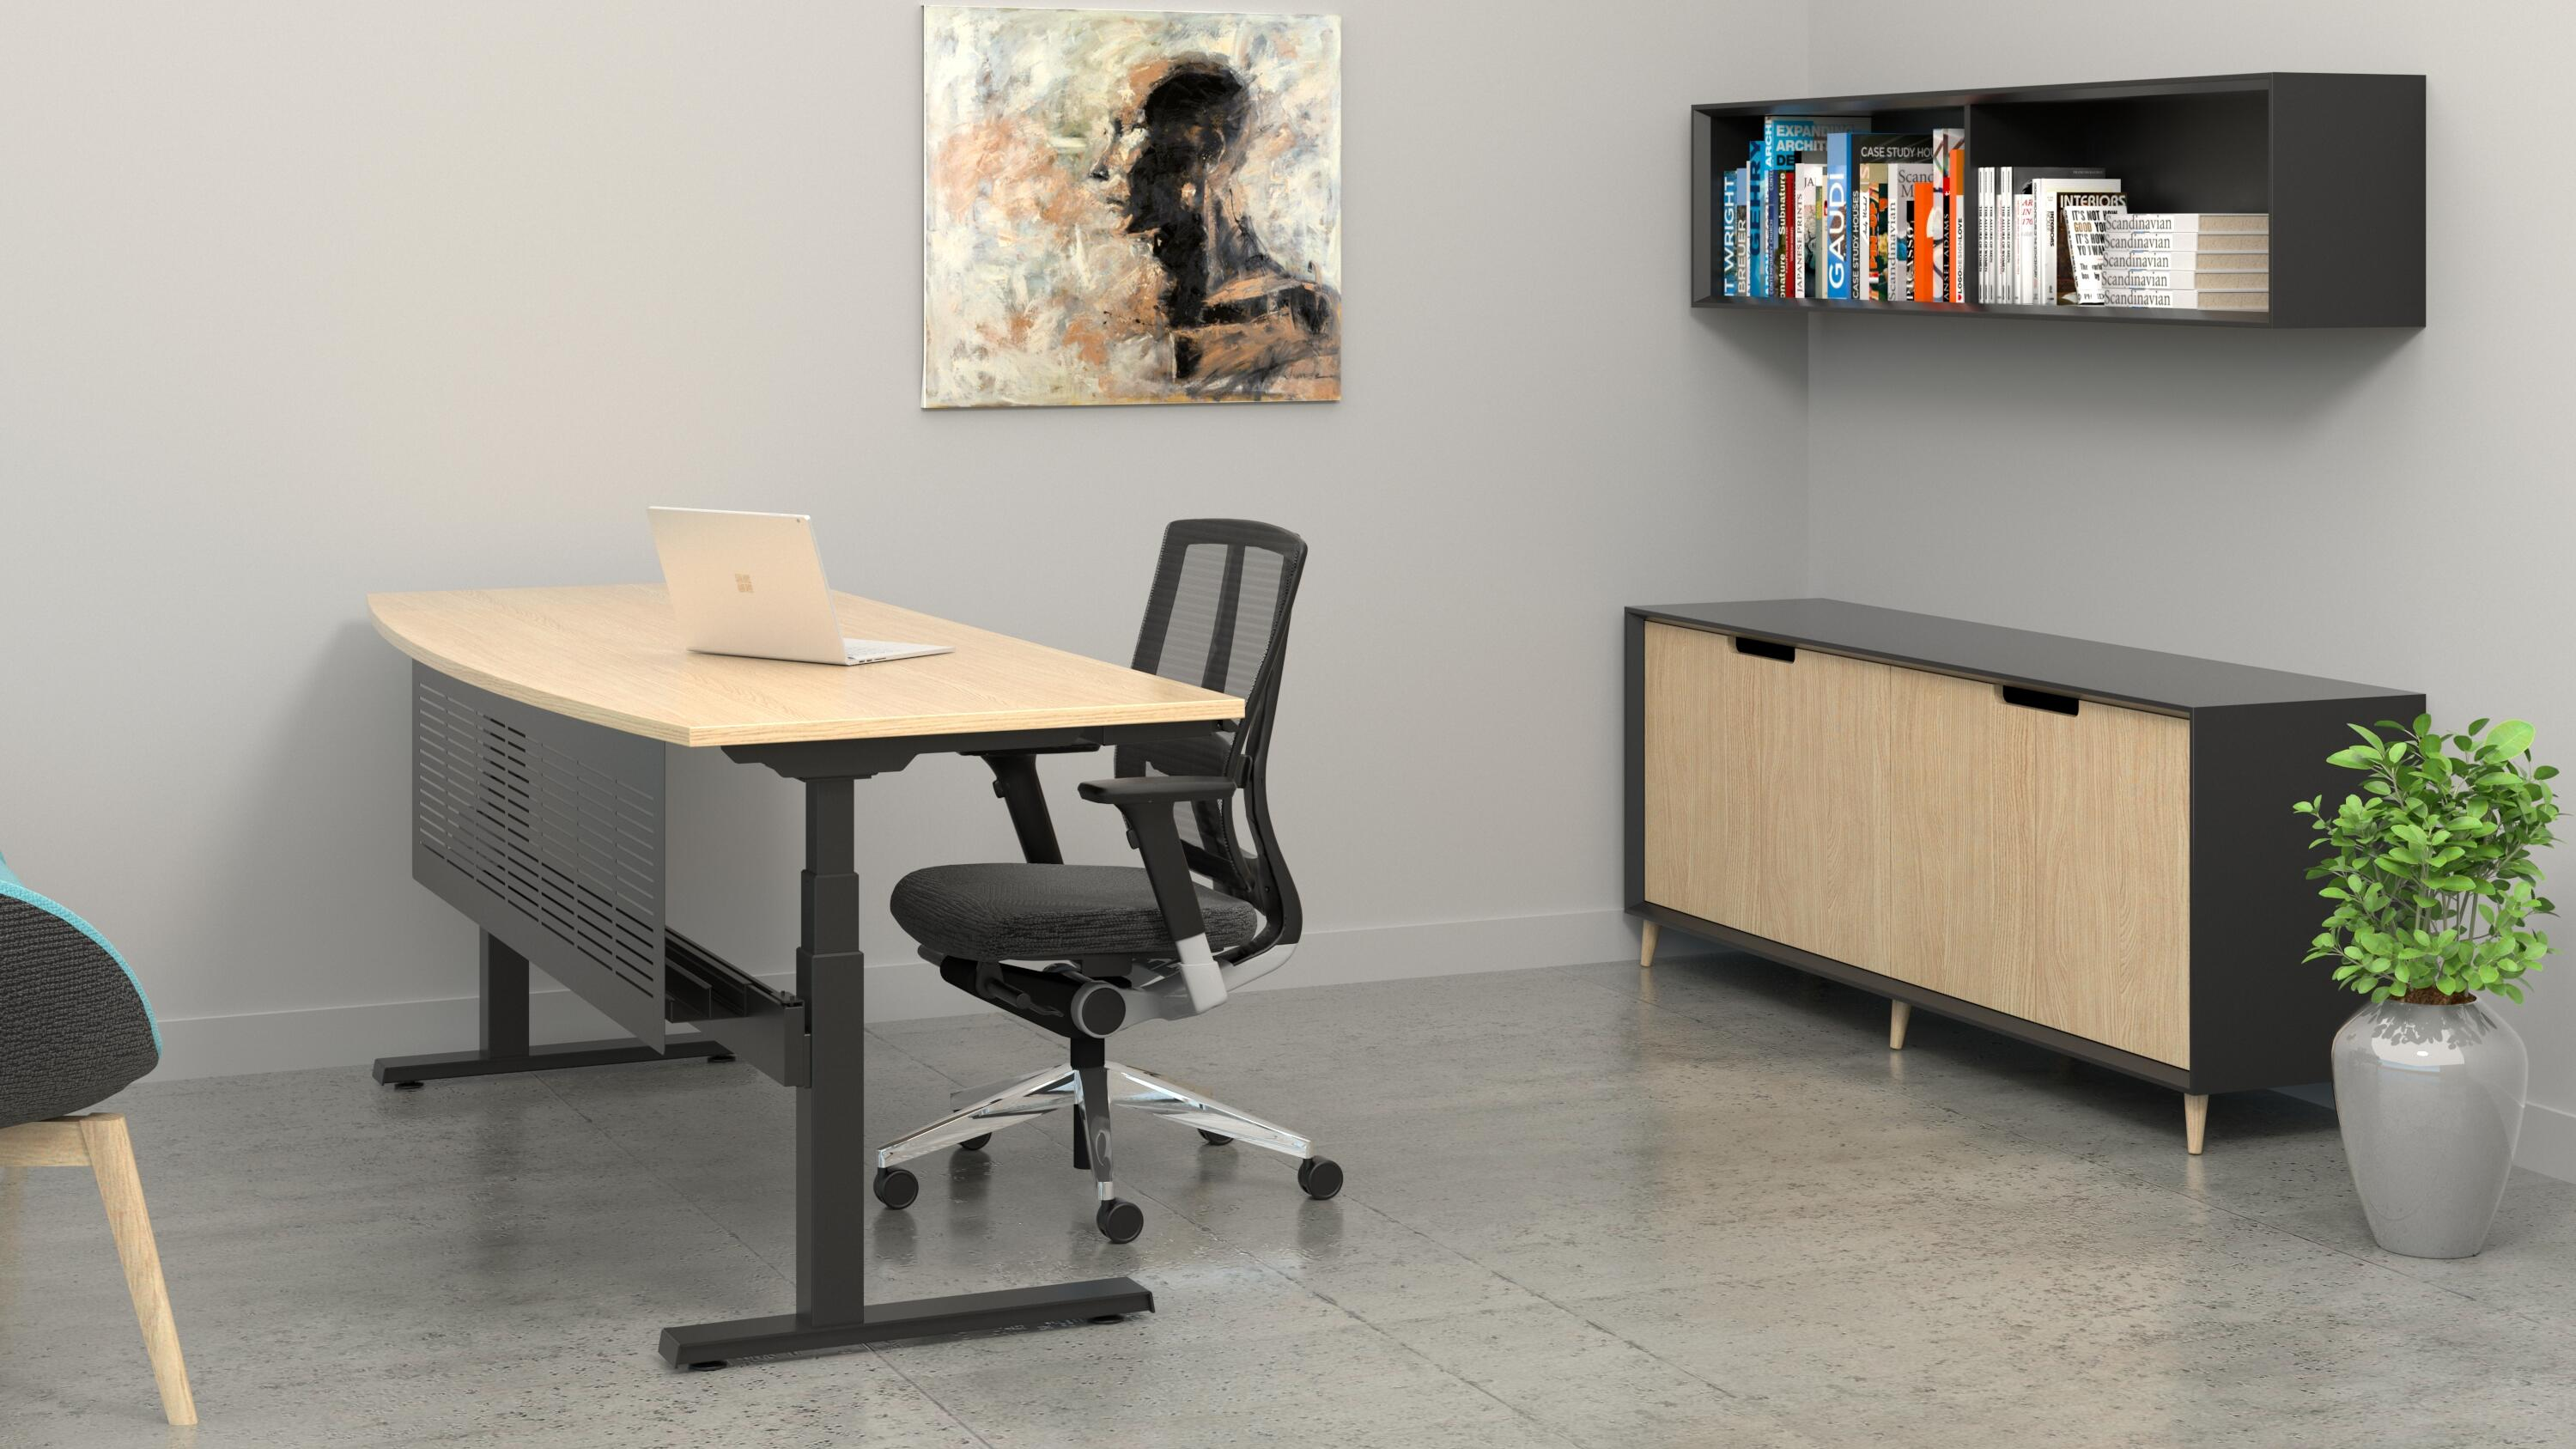 How to Set Up a Standing Desk